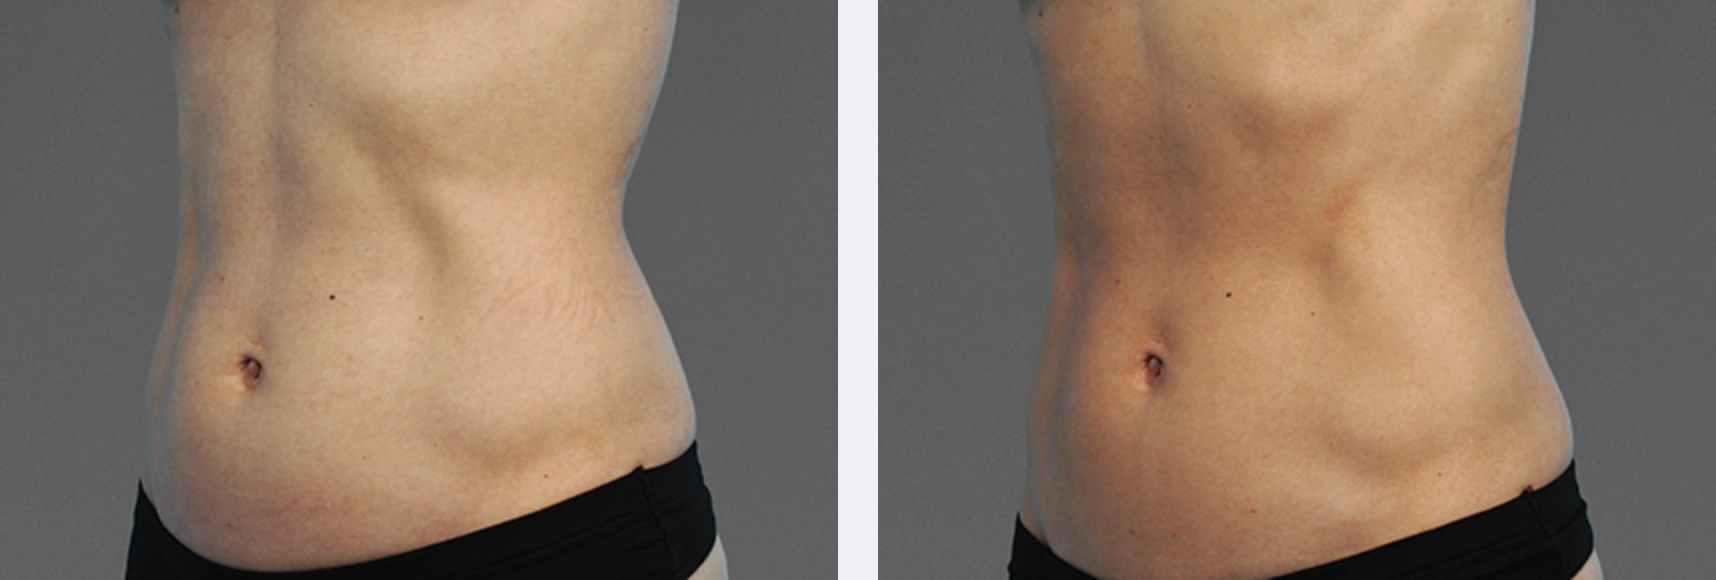 Image showing results from CoolTone treatment, a new body sculpting technology, New York City NY